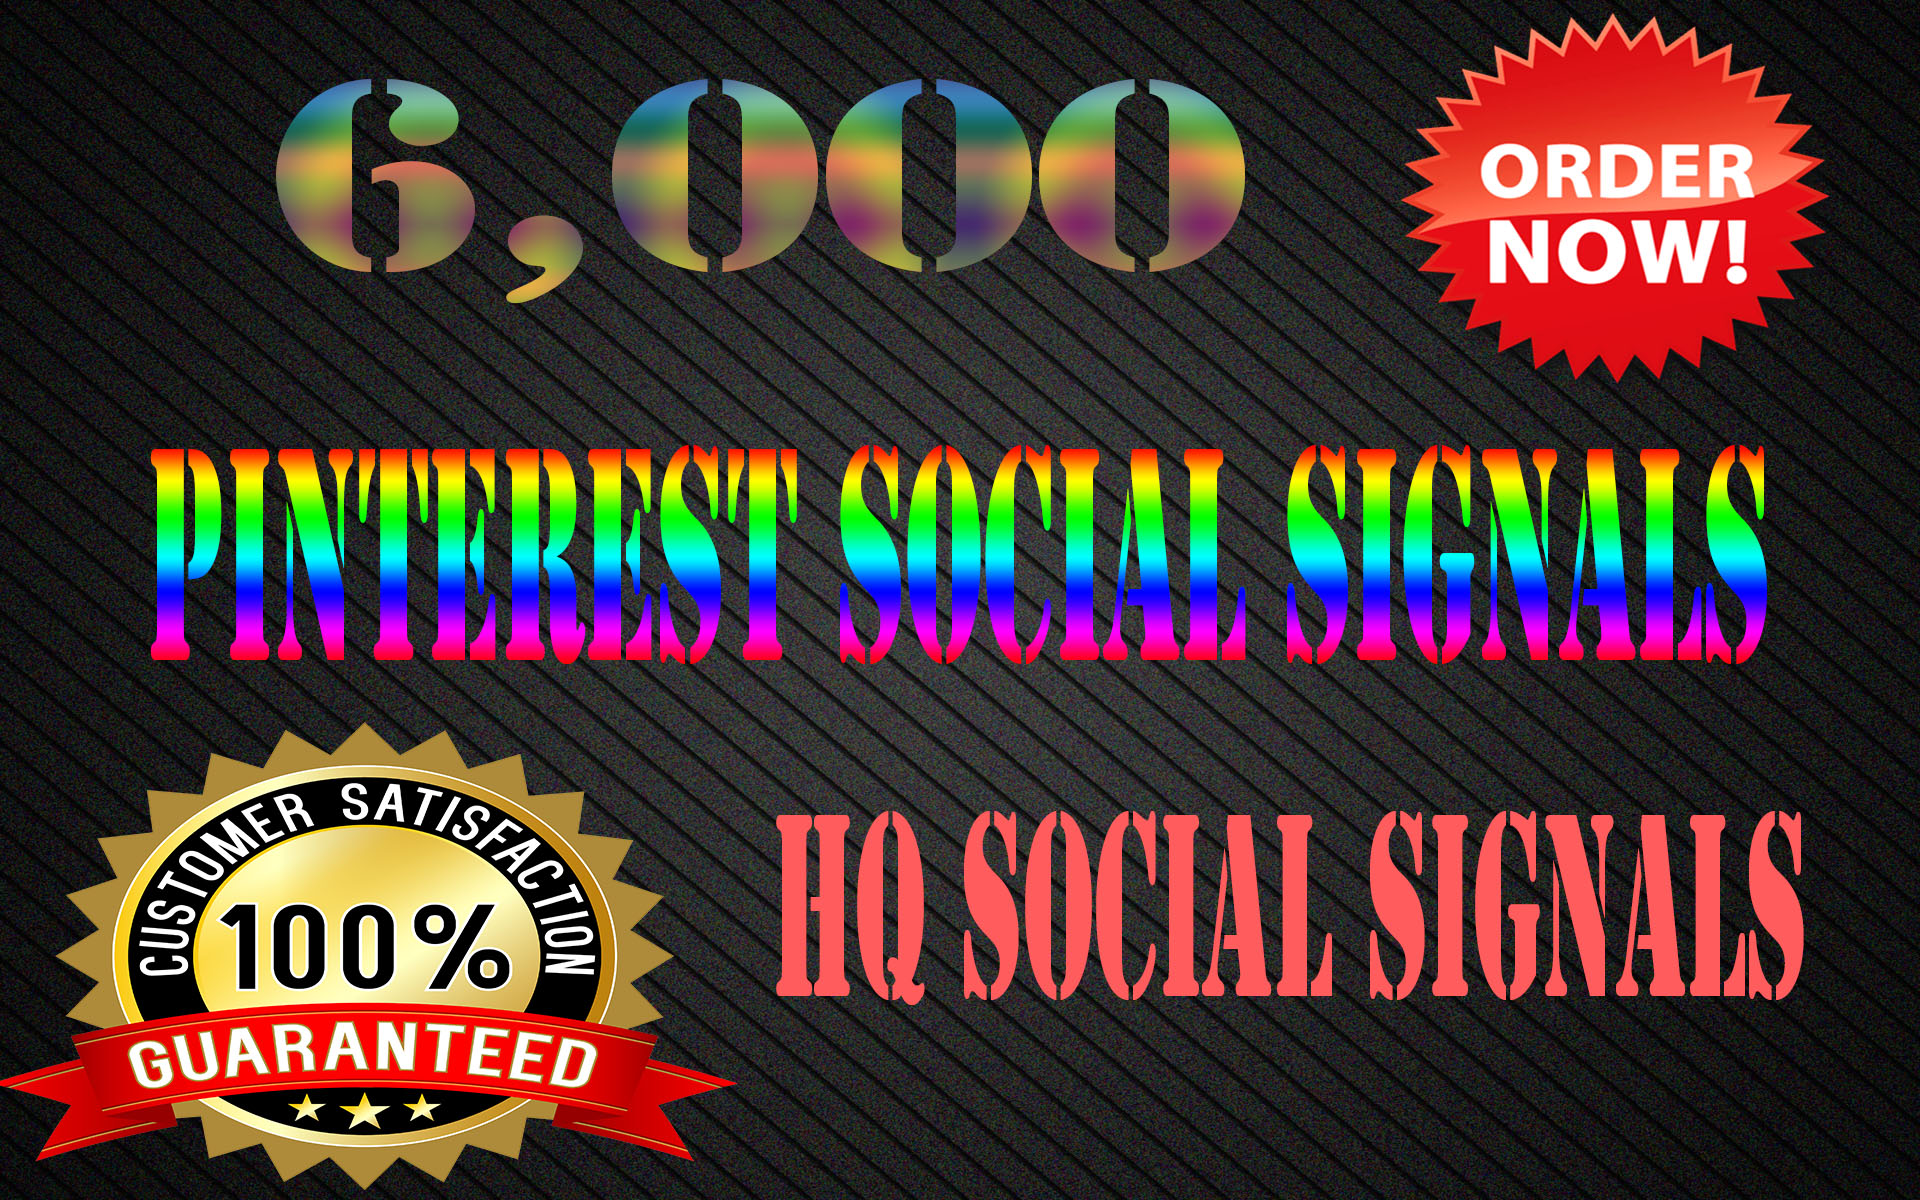 Top 6,000 Powerful Social Signals To Improve SEO & Boost Ranking